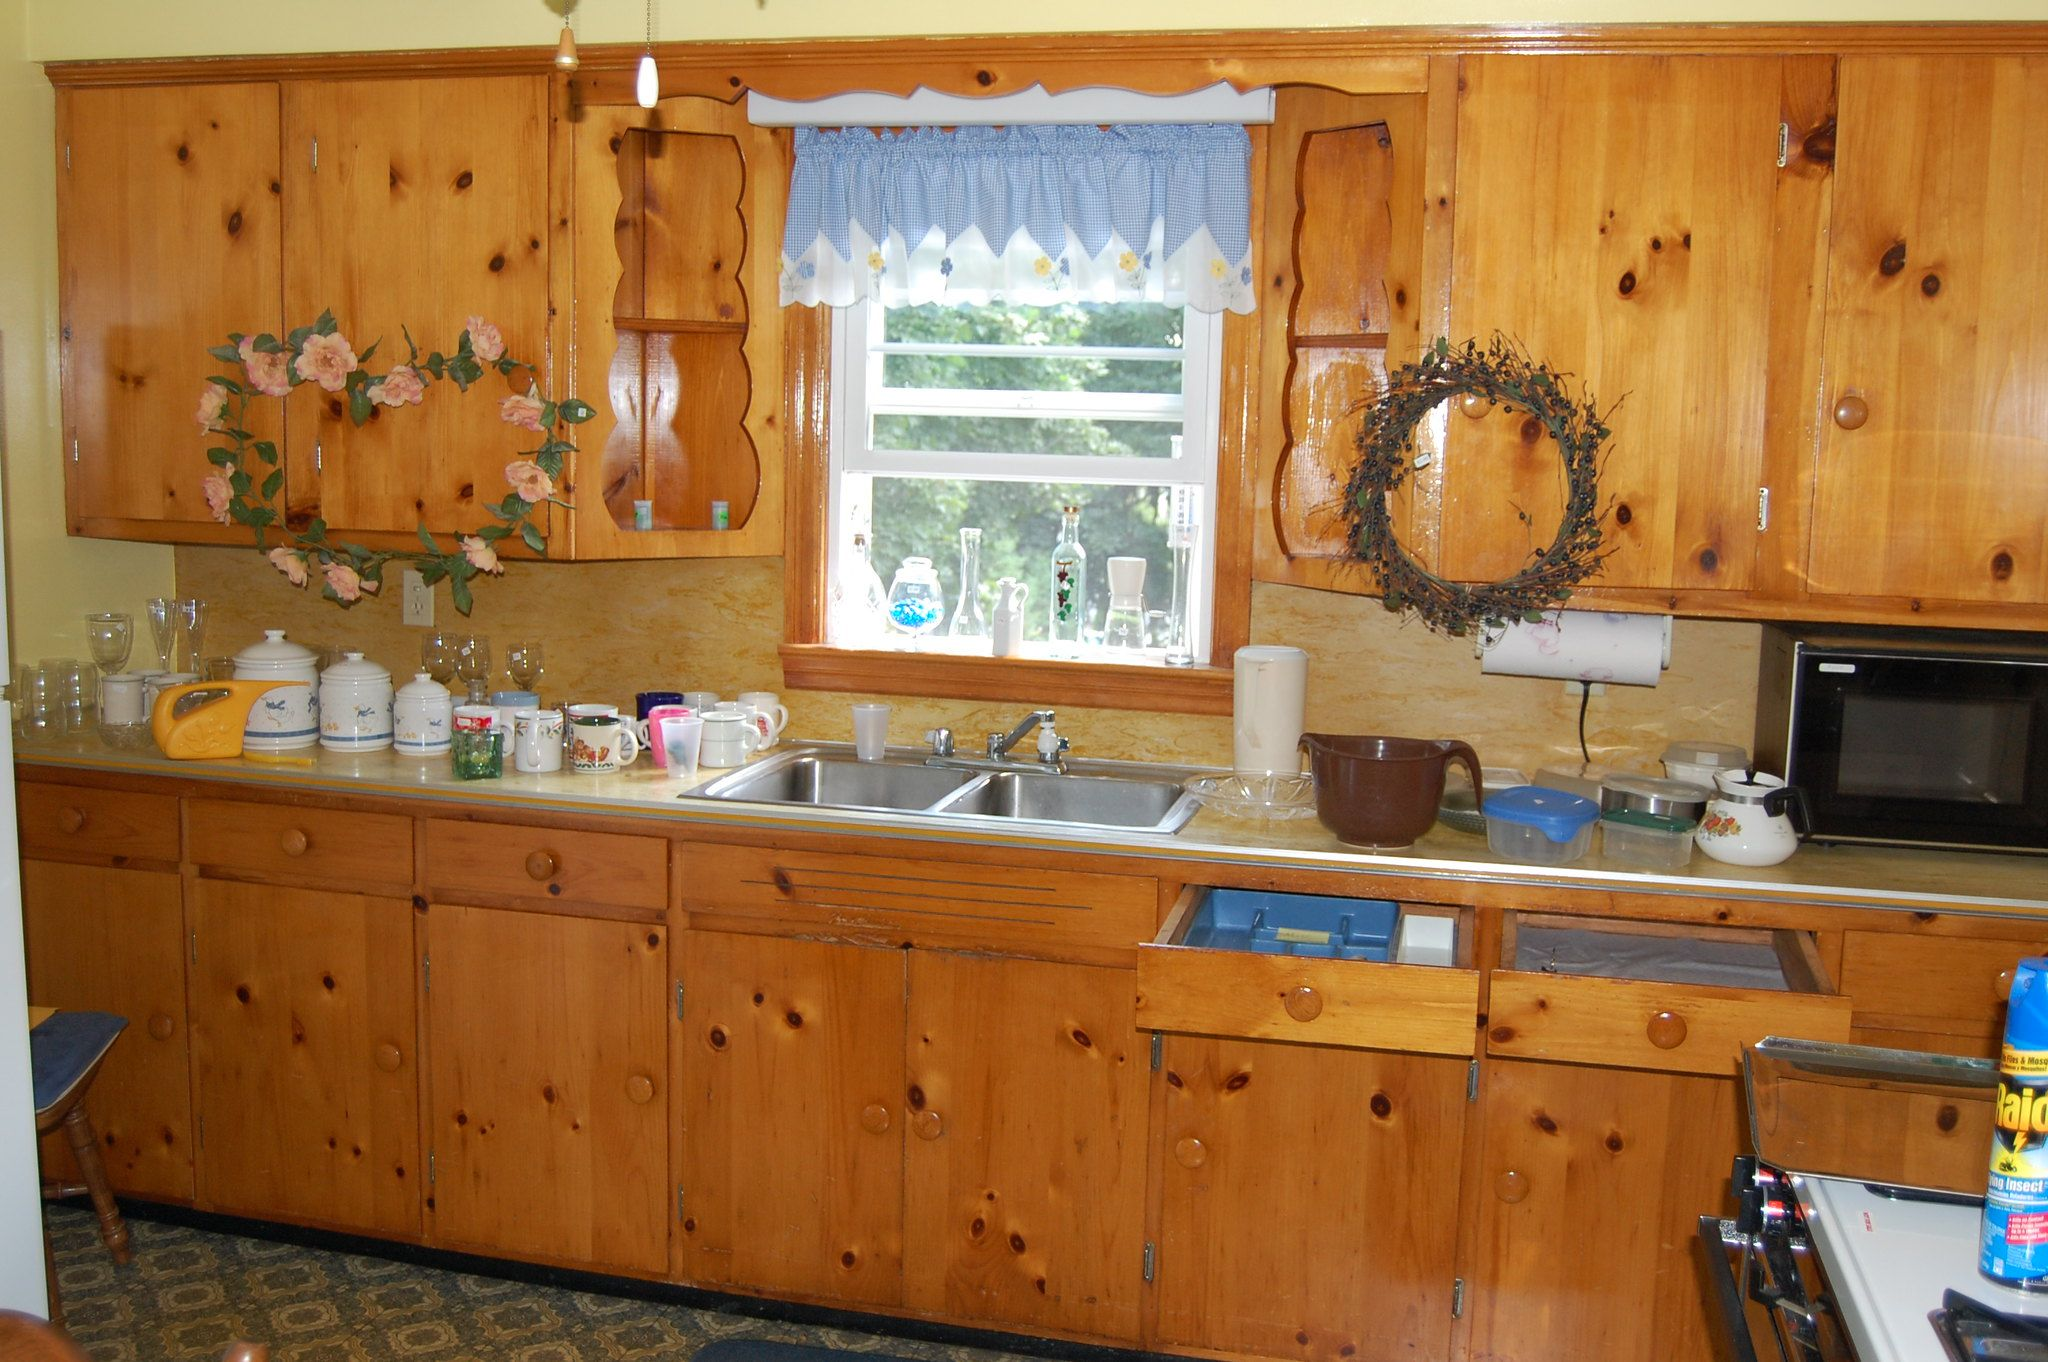 50s Knotty Pine Kitchen In 2020 Pine Kitchen Cabinets Pine Kitchen Knotty Pine Kitchen